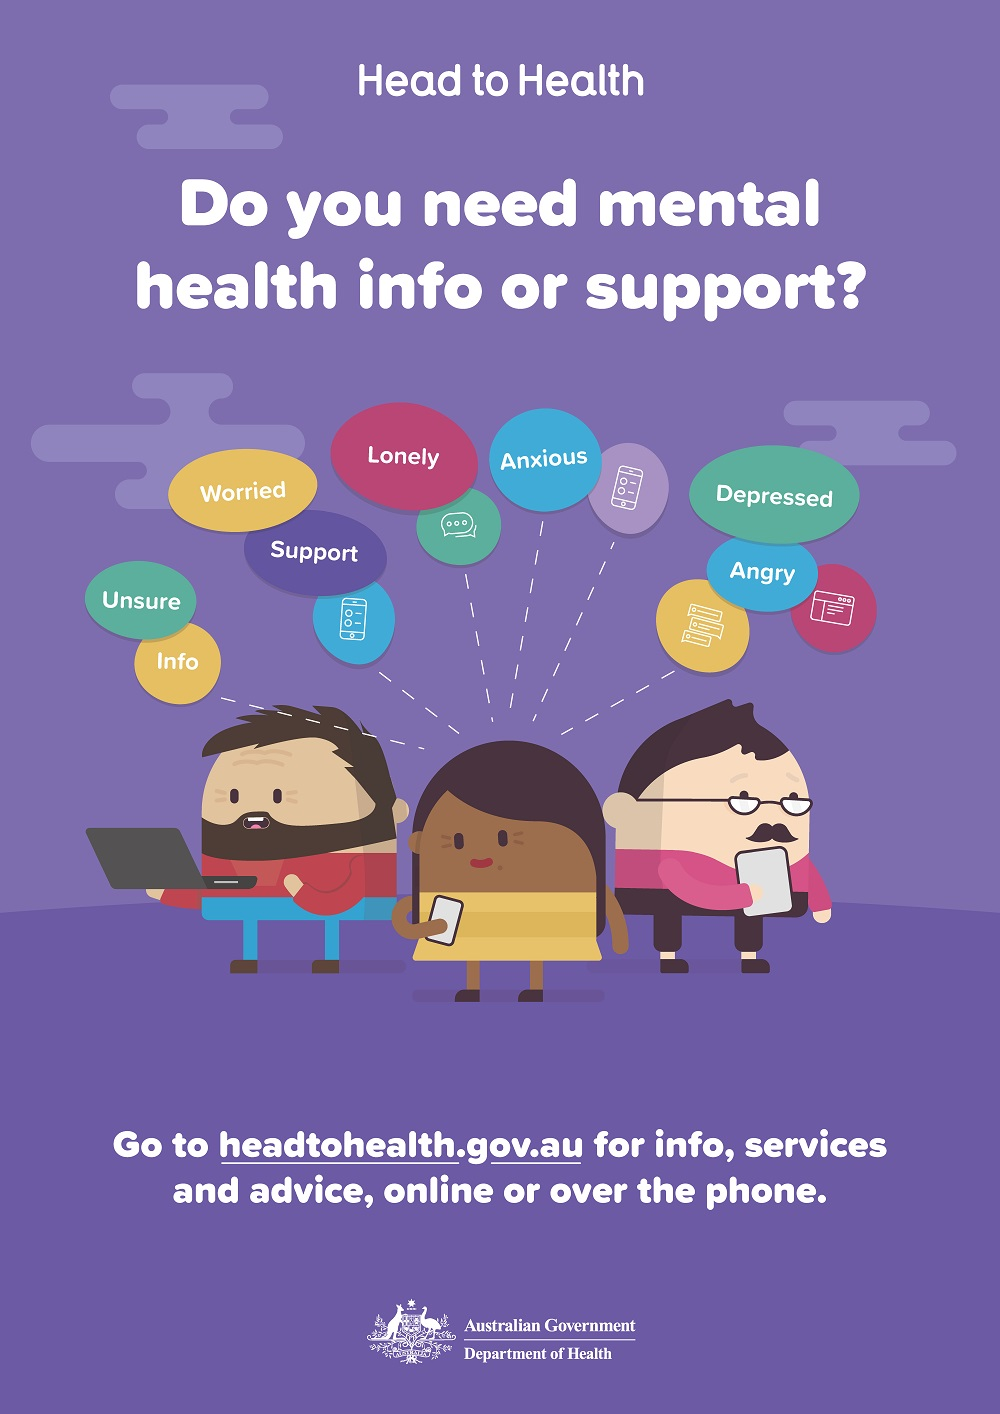 Head to Health is making it easier to find the support and resources you need